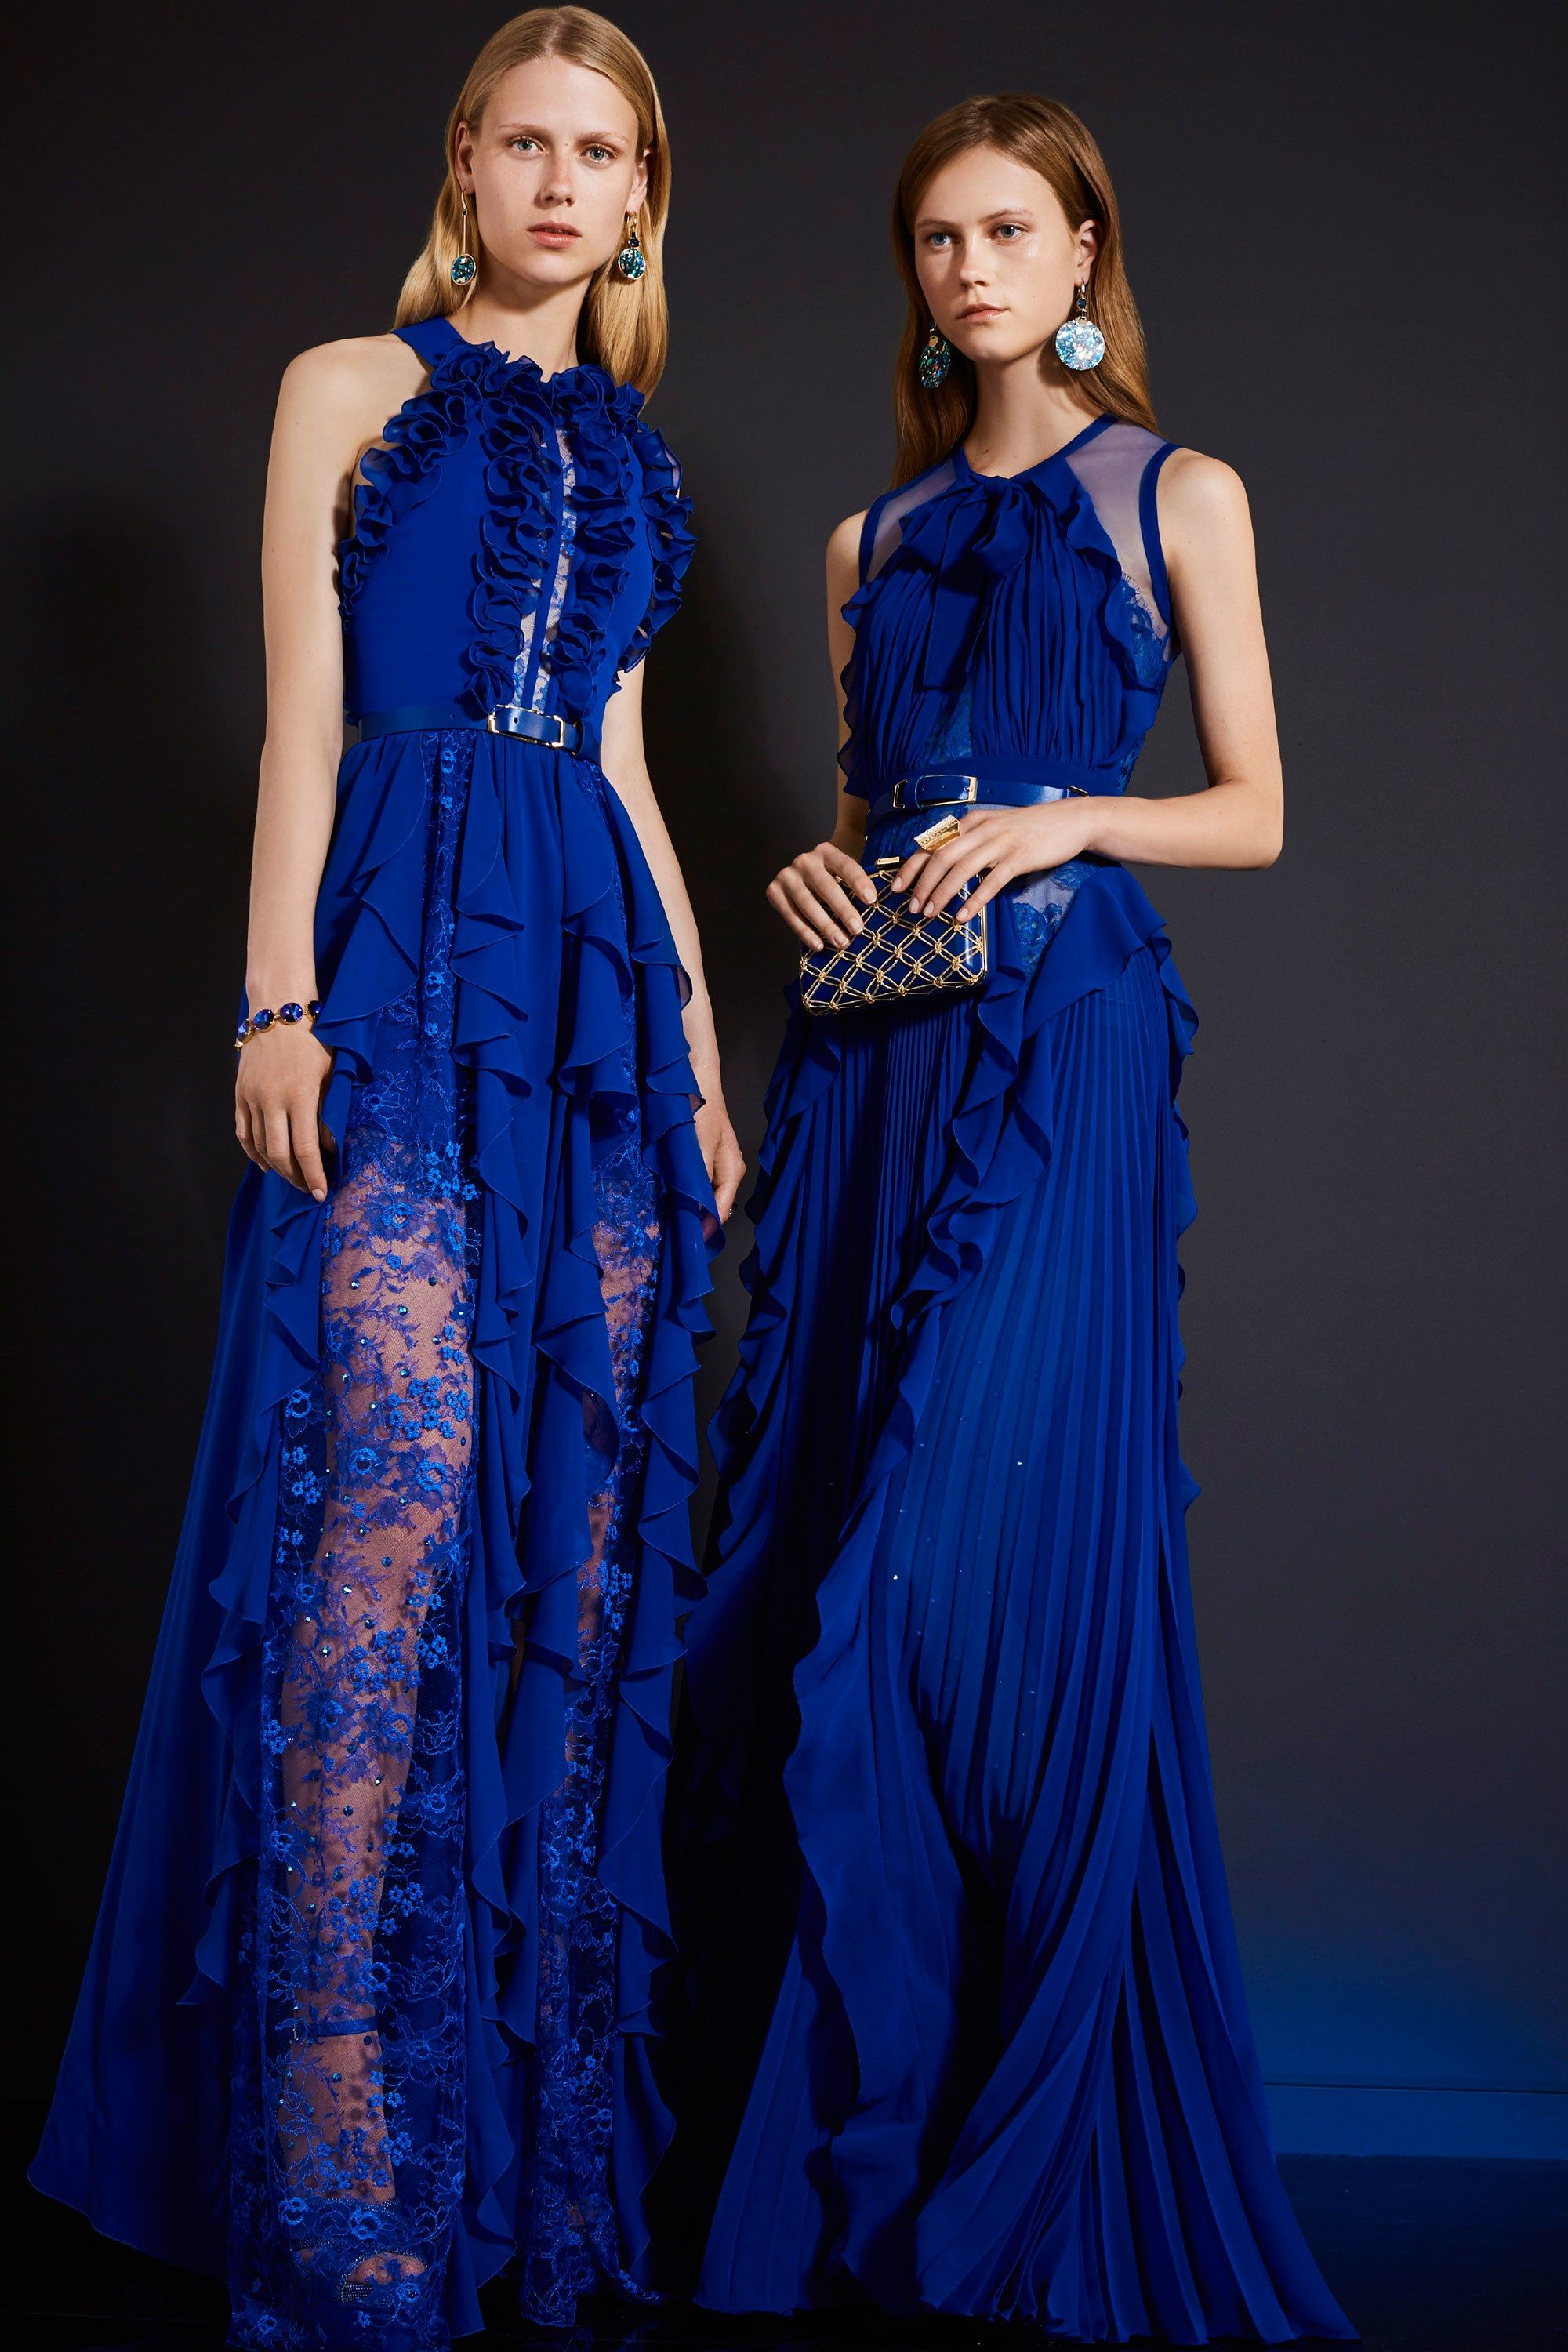 Elie Saab Woman Silk-chiffon Gown Cobalt Blue Size 34 Elie Saab Discount Shop Shop Cheap Online Free Shipping Factory Outlet yJj8Dq